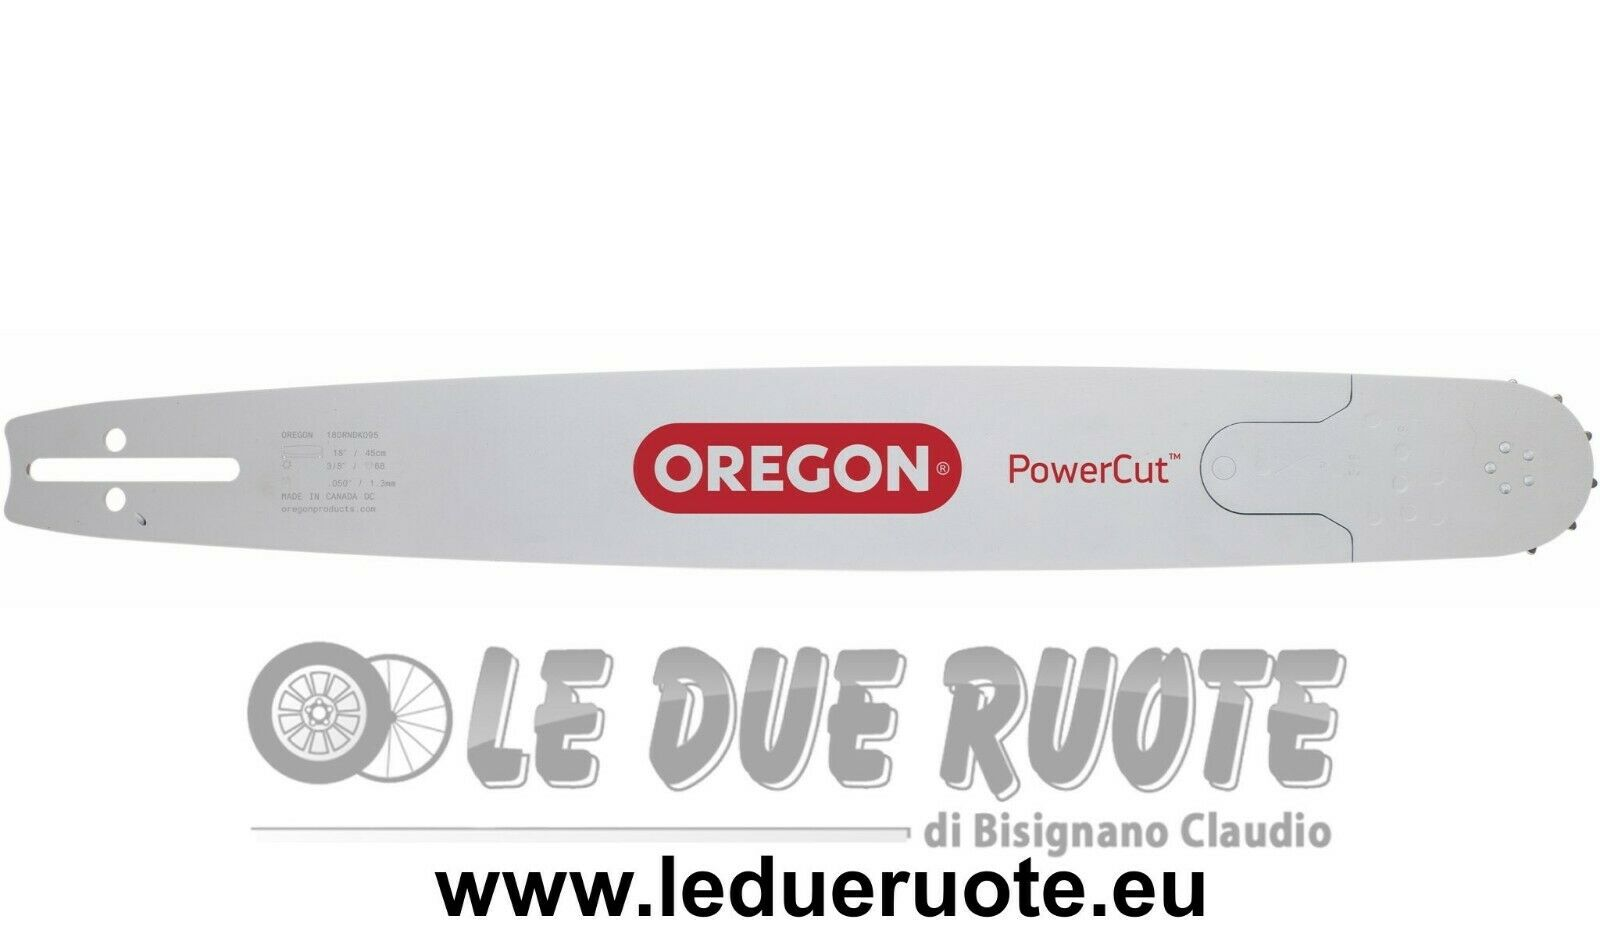 Bar Oregon Chainsaw Husqvarna 2101 572XP Power Cut™ 50 55 60 65 cm Original